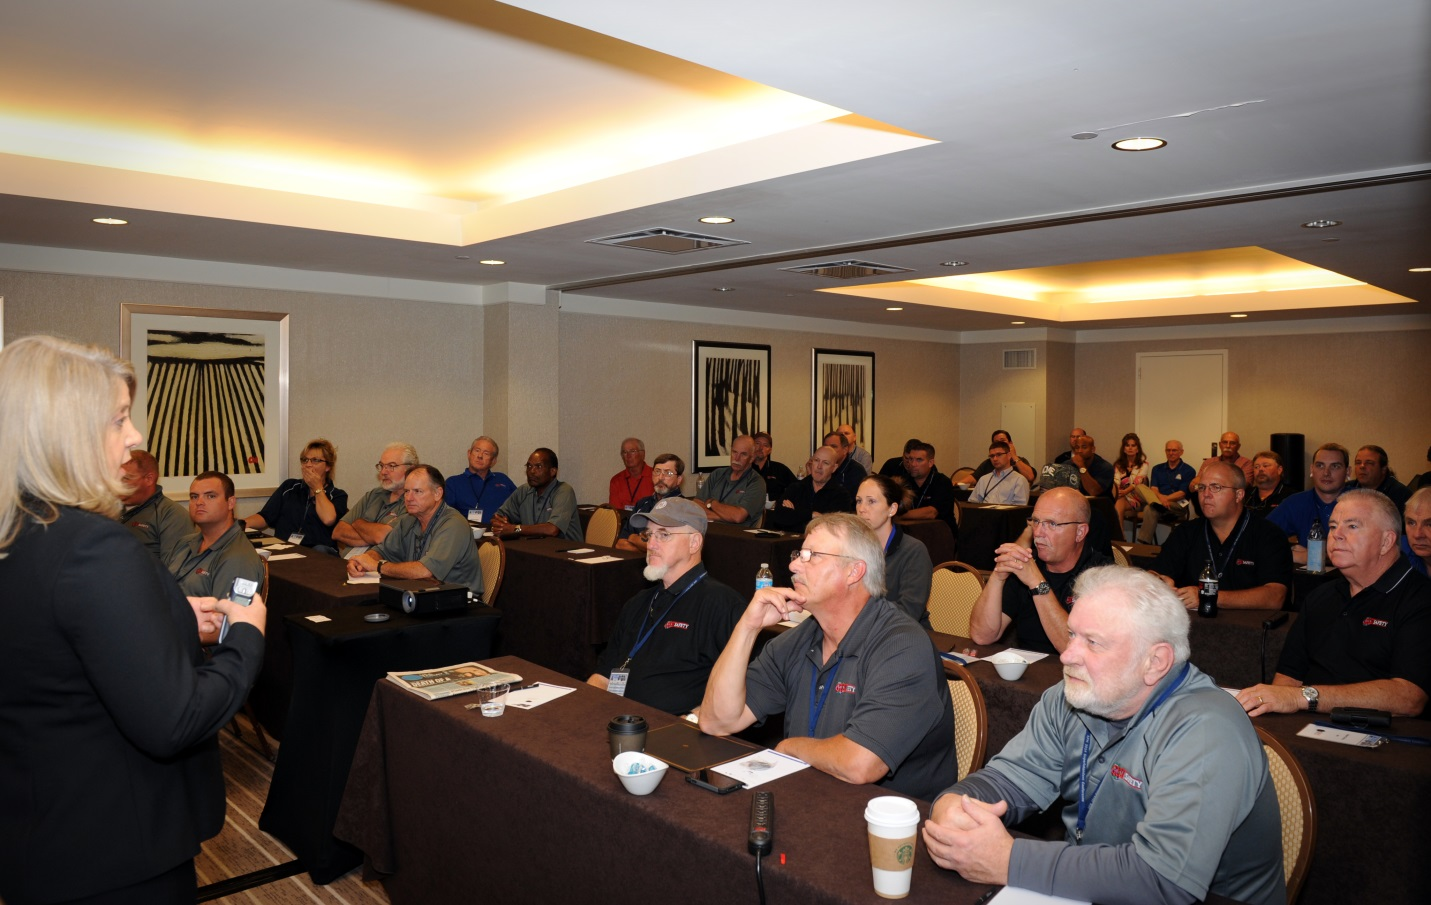 During their breakout, our GSSI team received an update from OSHA (Occupational Health & Safety Administration) Compliance Assistance Specialist, Joan Spencer.